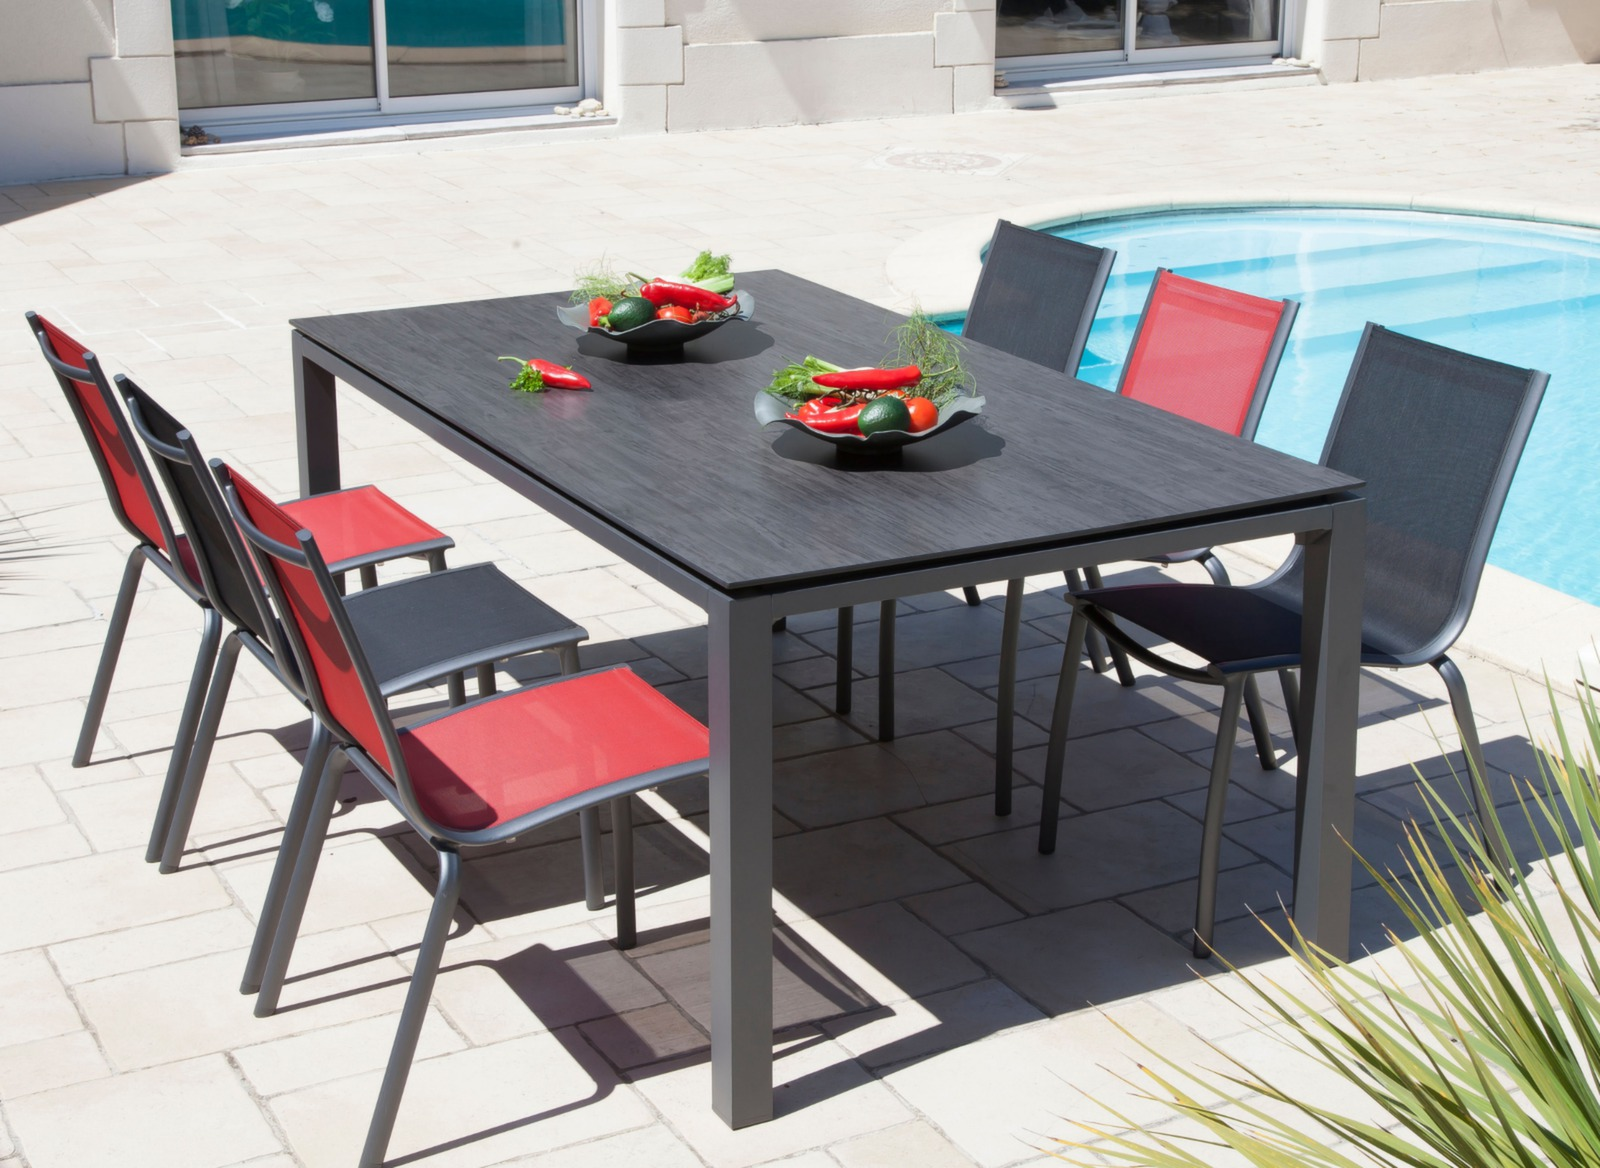 table de jardin stoneo 210cm plateau hpl meubles jardin proloisirs. Black Bedroom Furniture Sets. Home Design Ideas